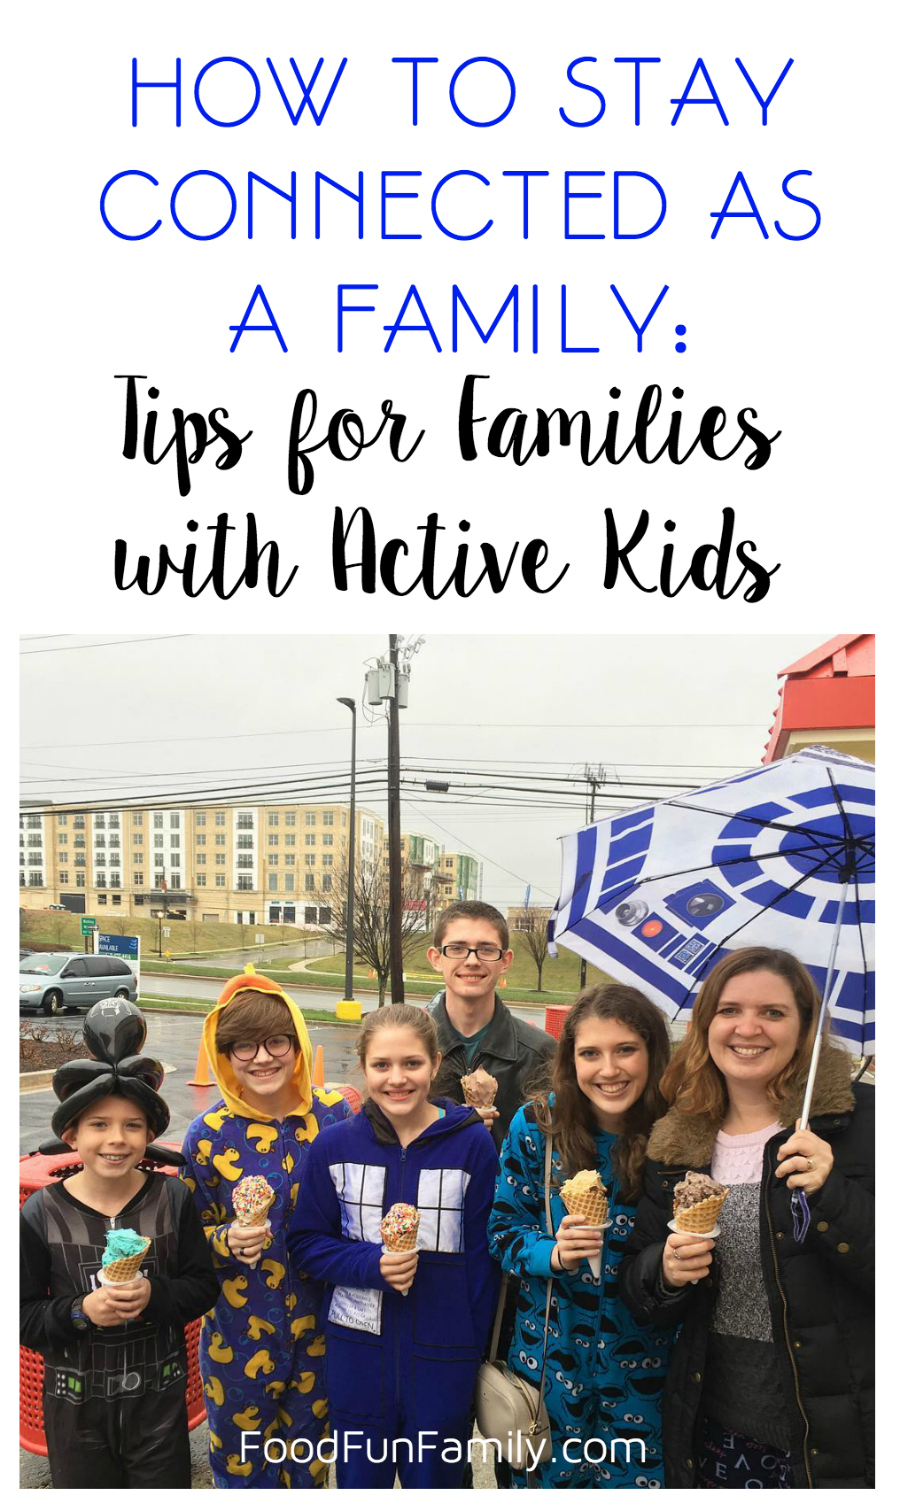 How to Stay Connected as a Family Tips for Families with Active Kids